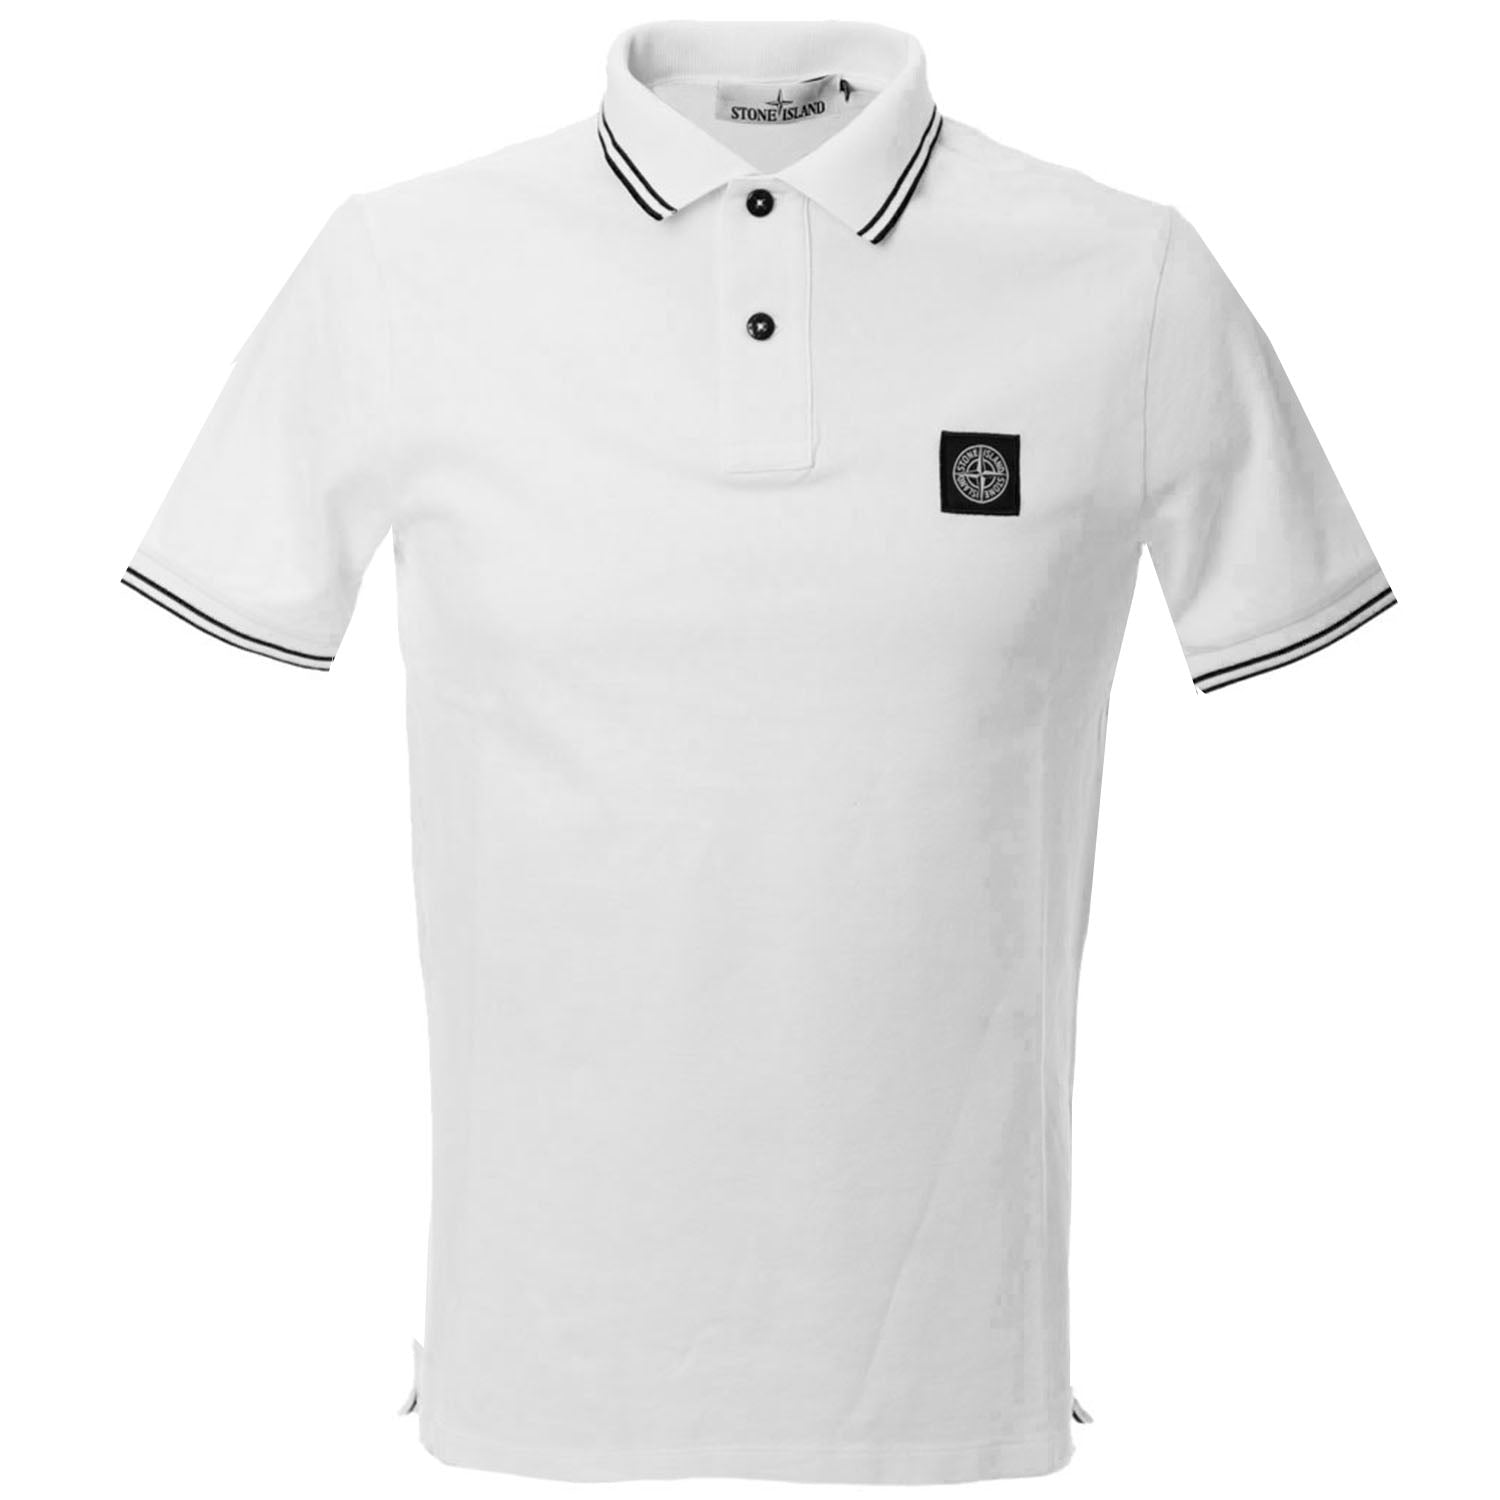 Stone Island Patch Logo Short Sleeve Polo T-Shirt